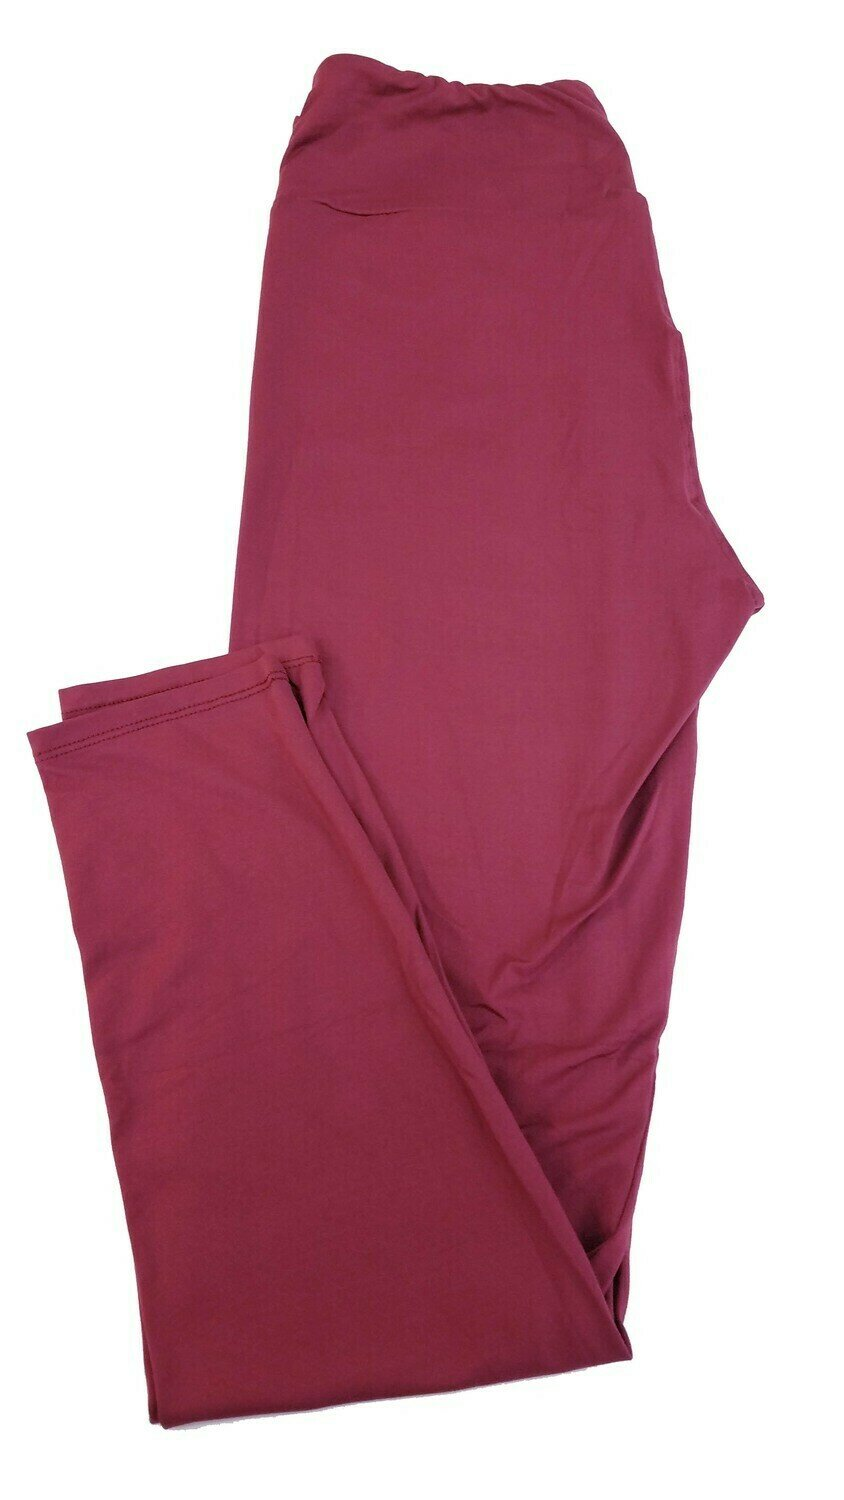 LuLaRoe Tall Curvy TC Solid Roan Rouge Buttery Soft Leggings fits Womens sizes 12-18